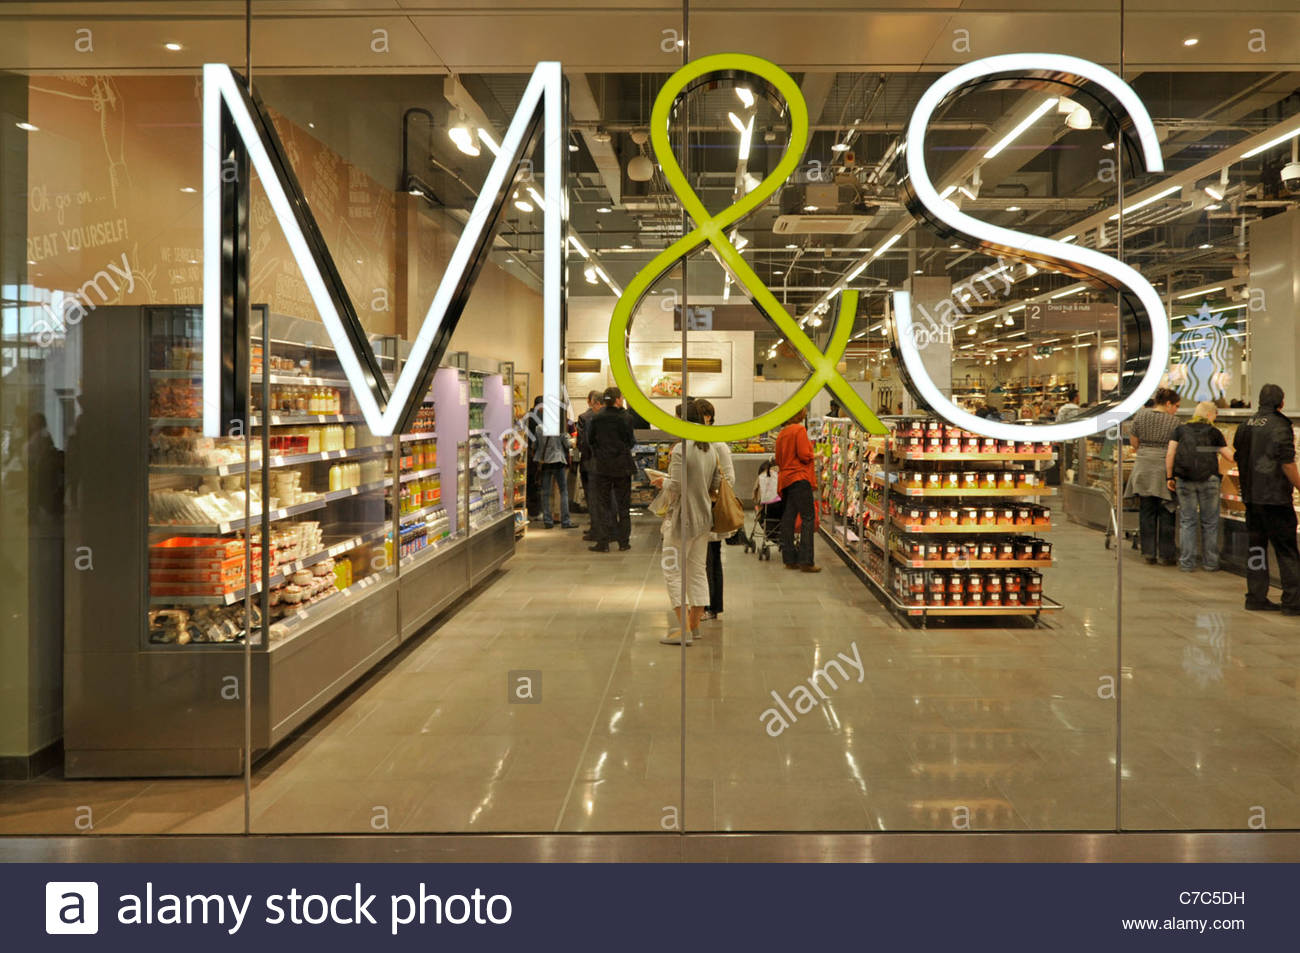 M&S Food – coming to a town near you? Search for seven new sites underway